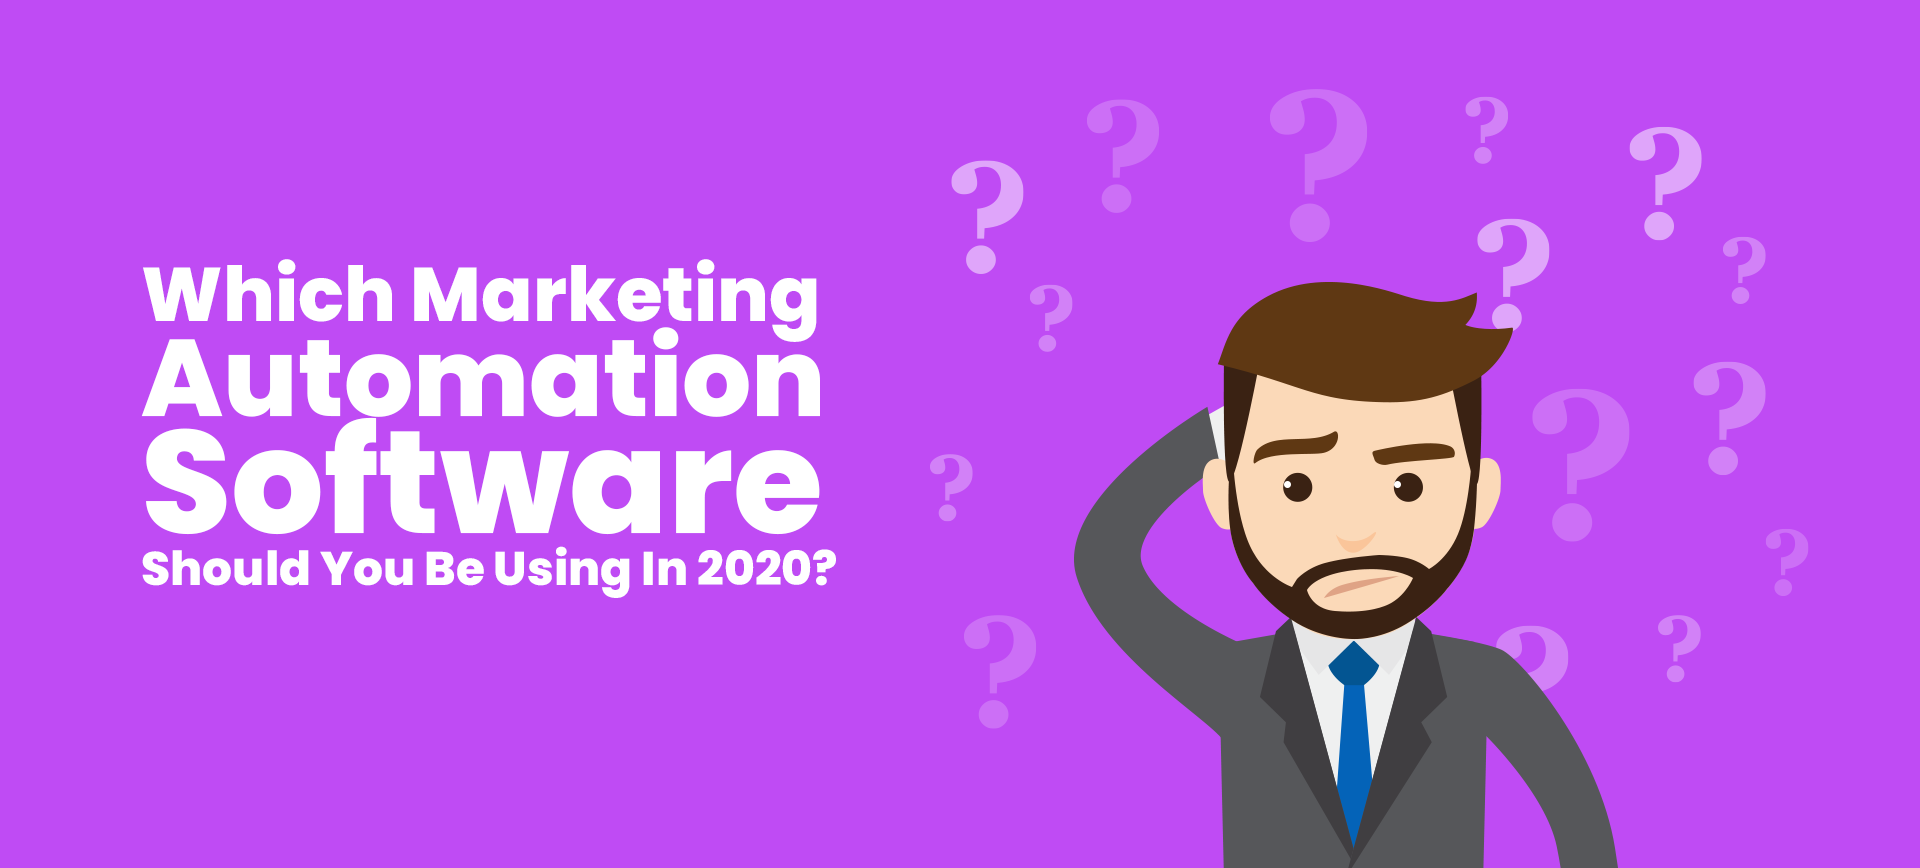 Which Marketing Automation Software Should You Be Using In 2020?